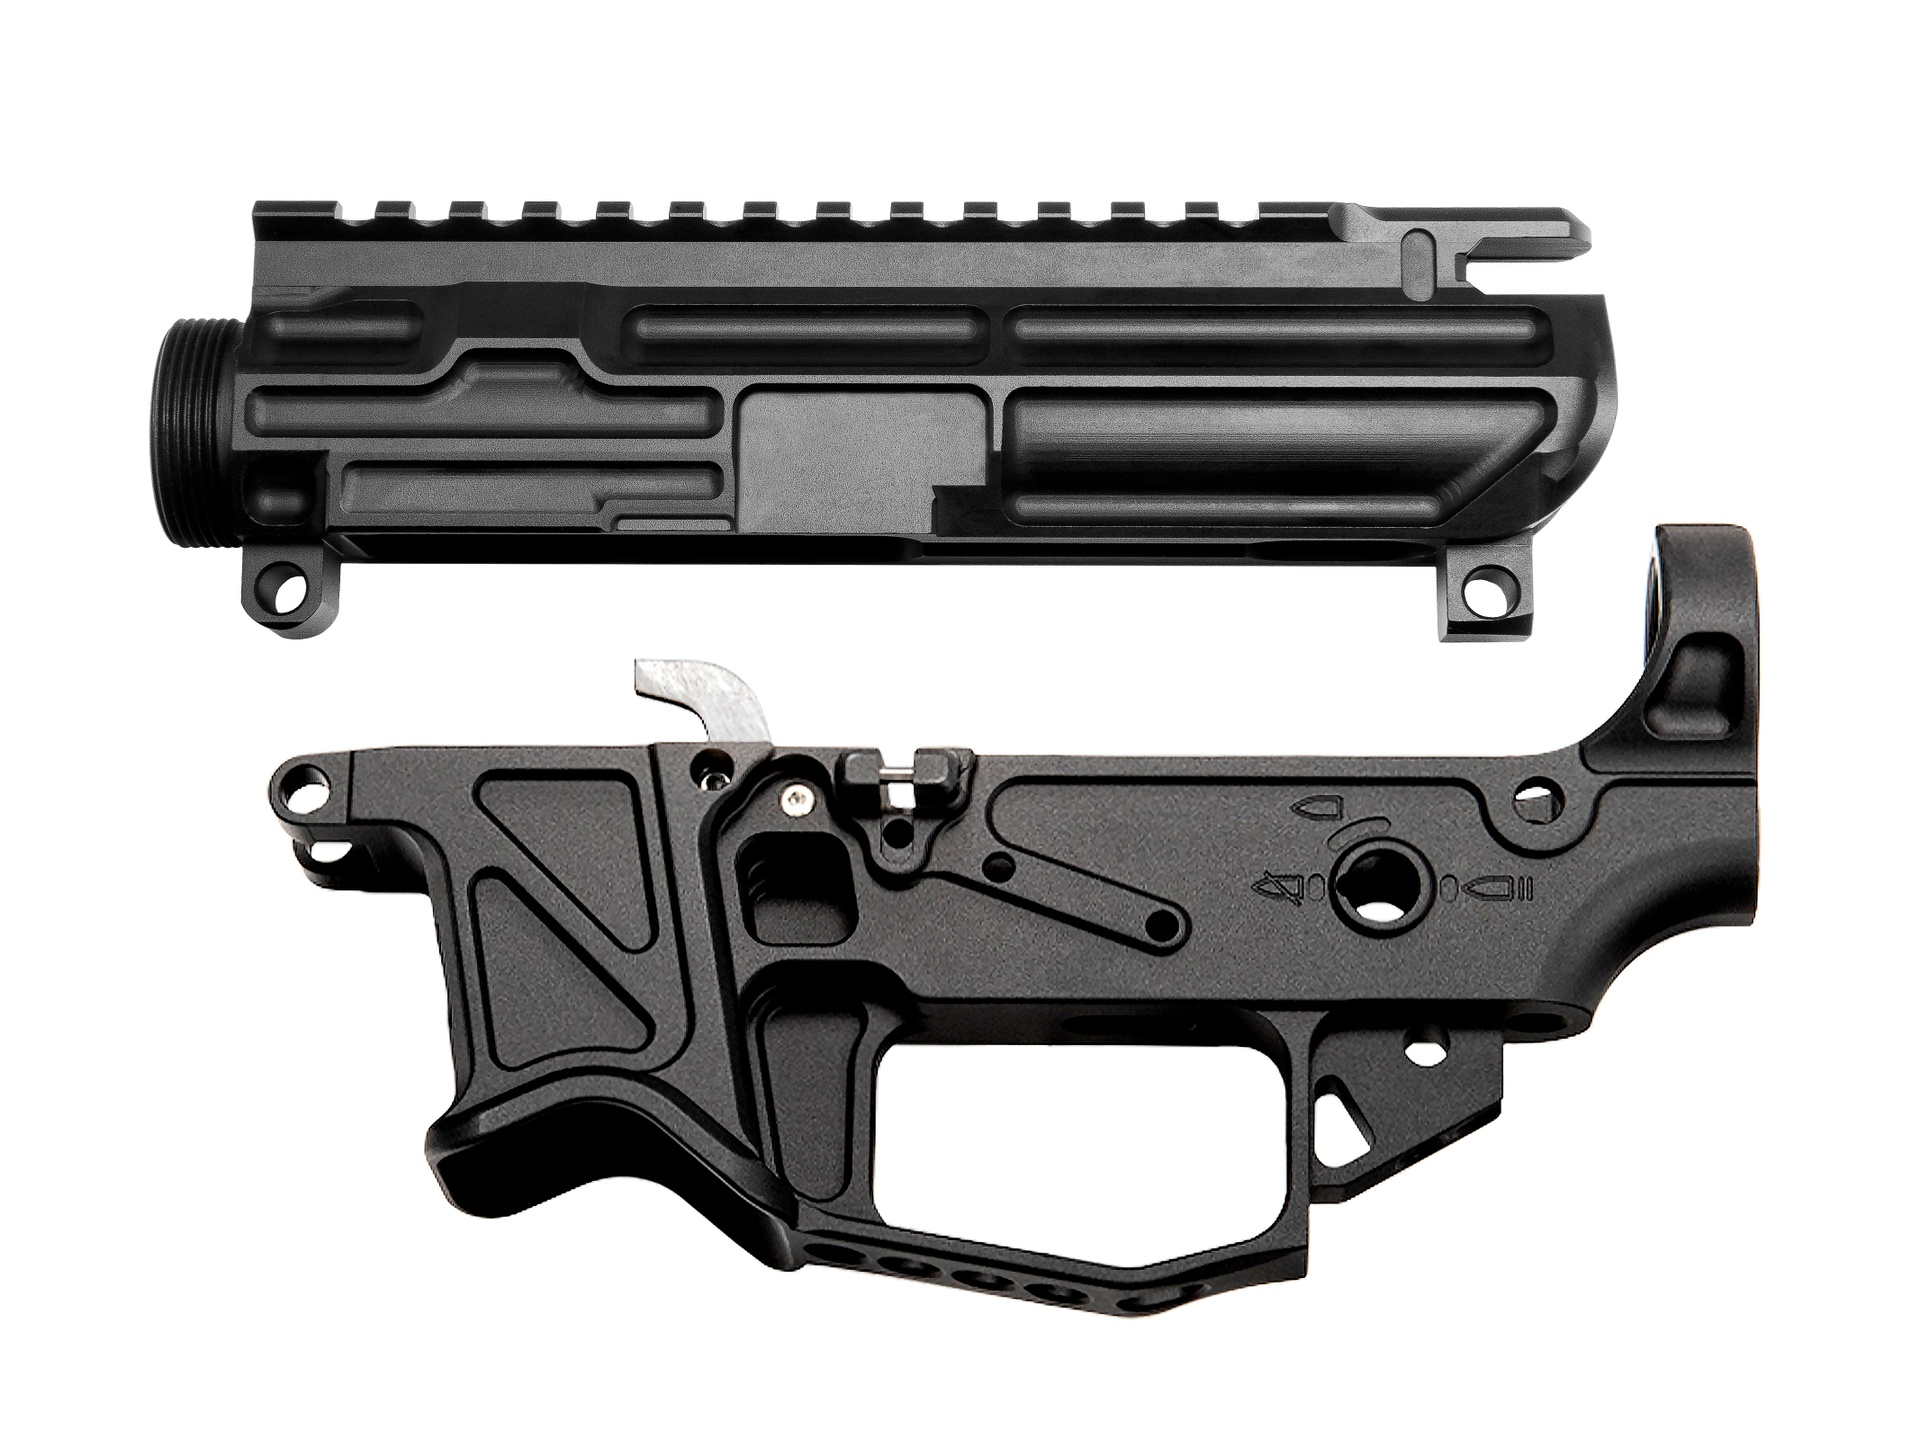 BAD-GS Glock Style Lightweight Billet Upper and Lower Receiver Set